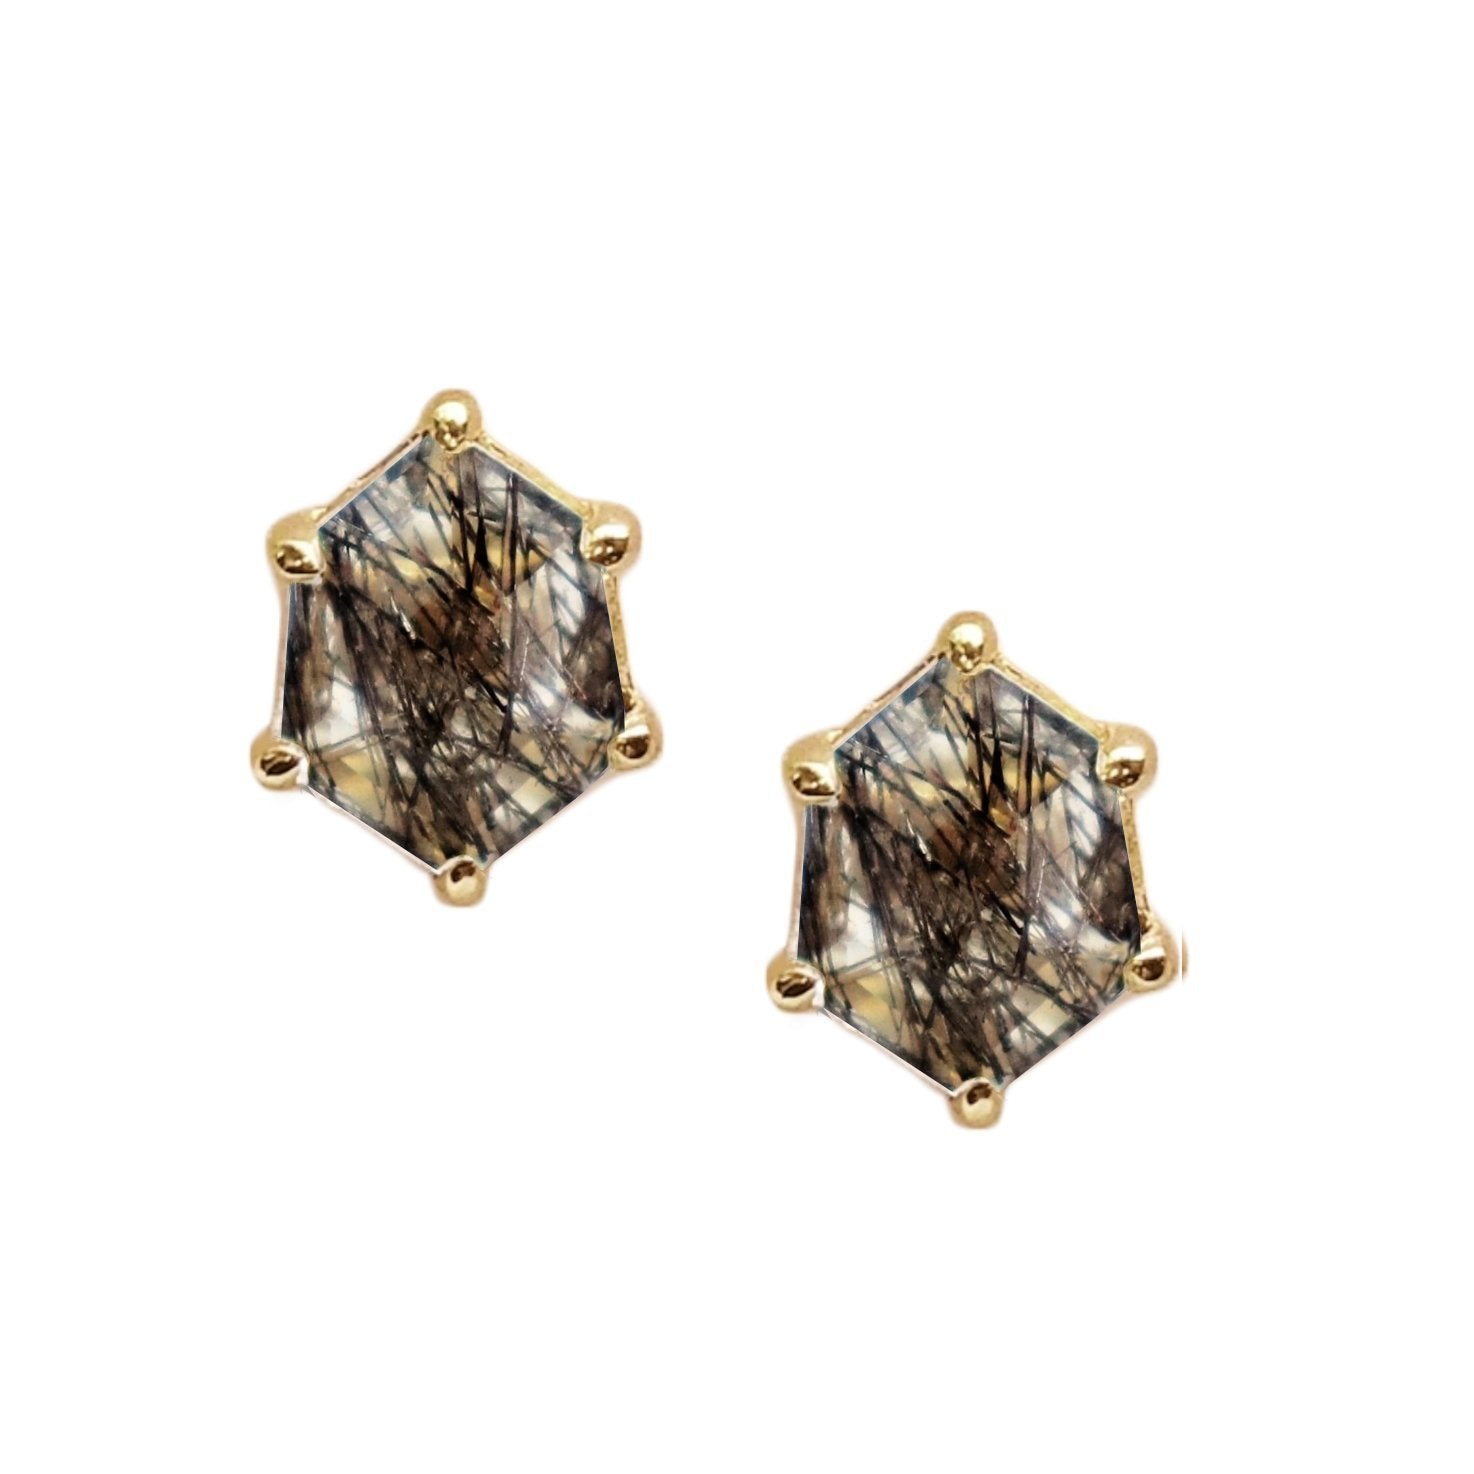 MINI HONOUR SHIELD STUD EARRINGS - BLACK RUTILE QUARTZ & GOLD - SO PRETTY CARA COTTER